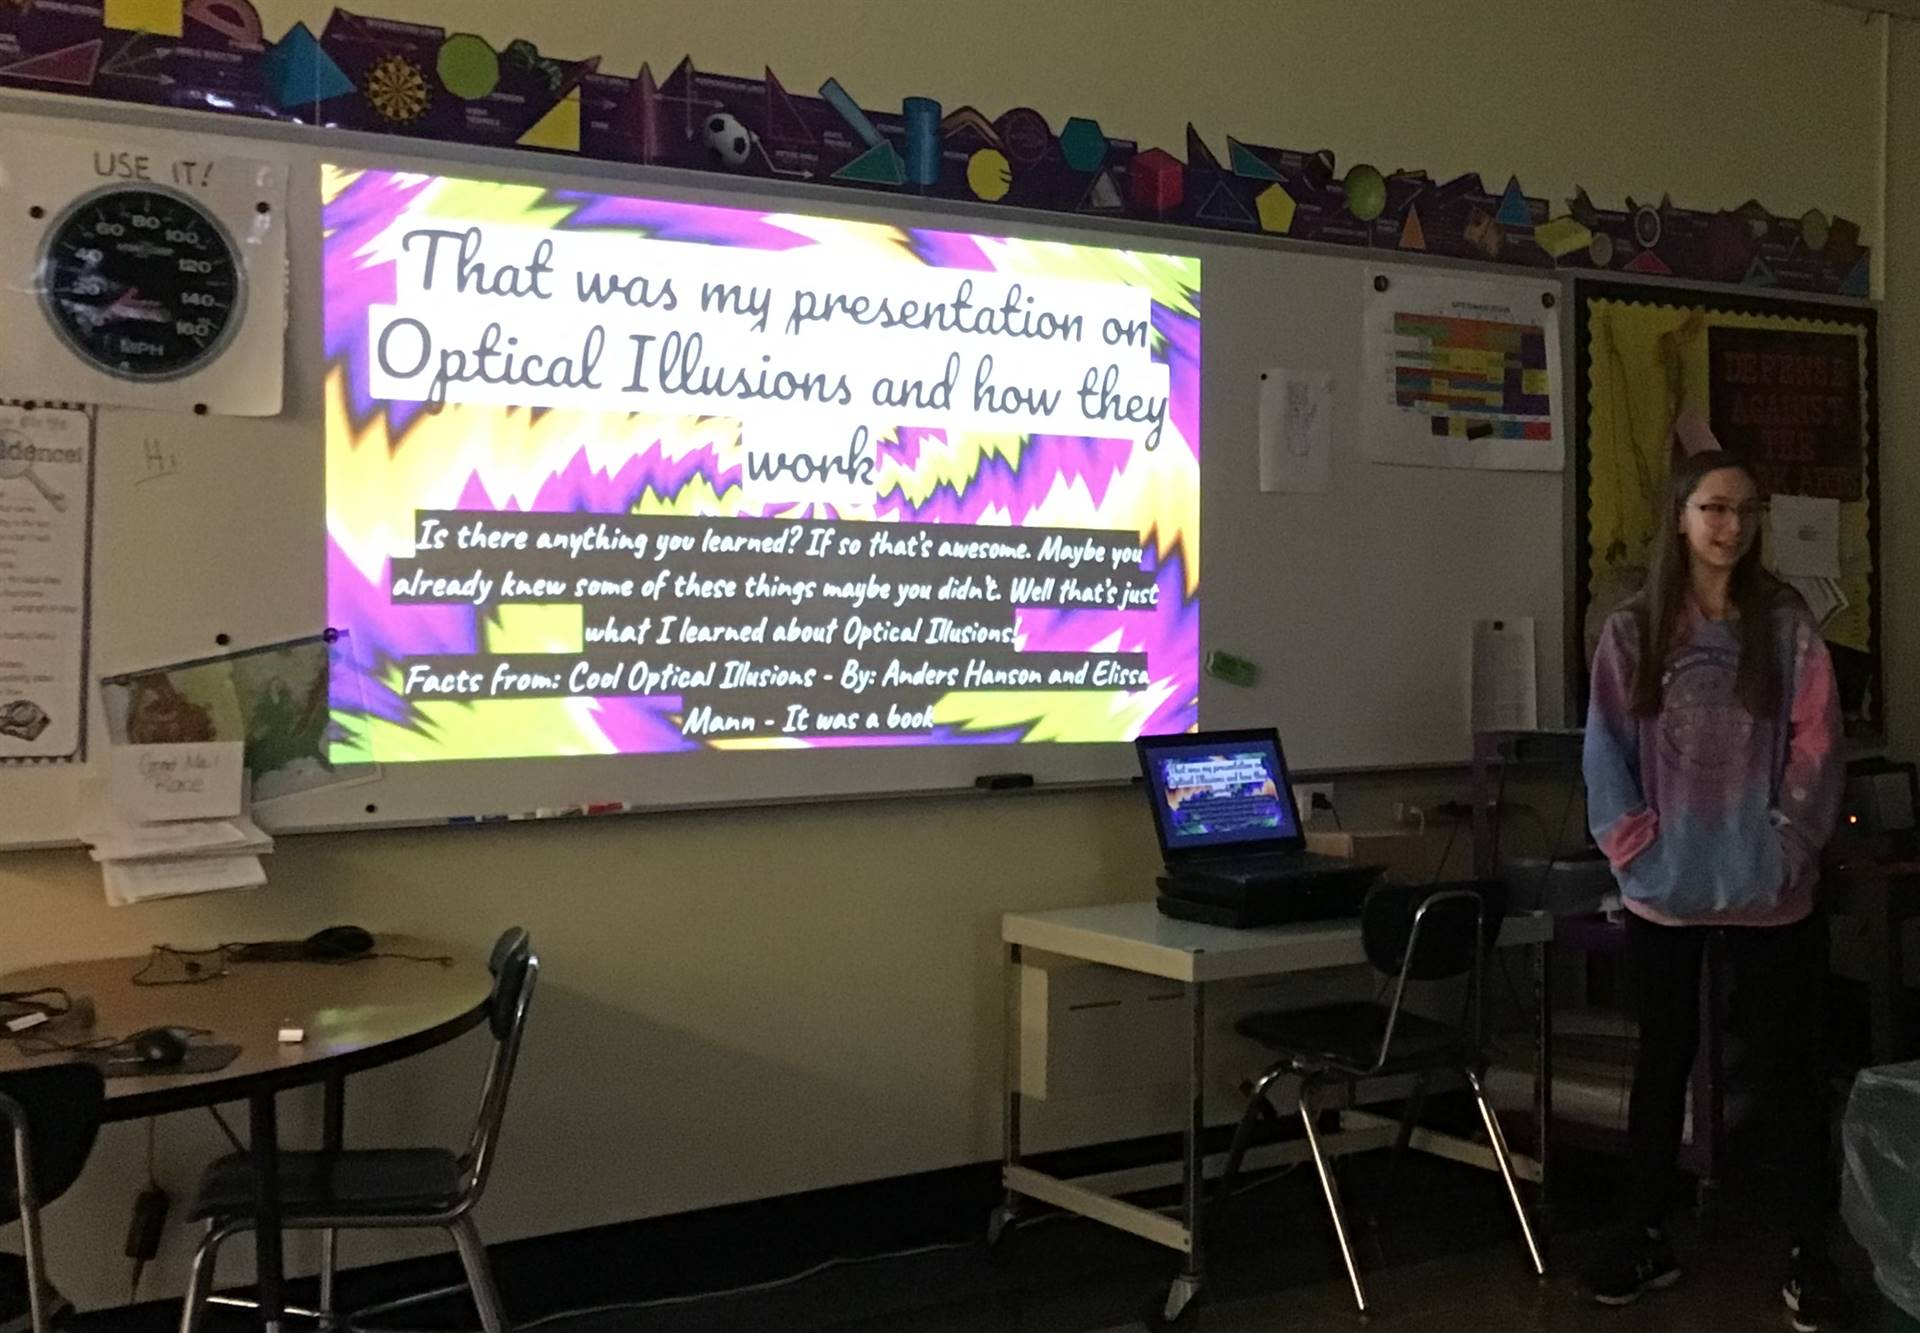 6th grader presenting project